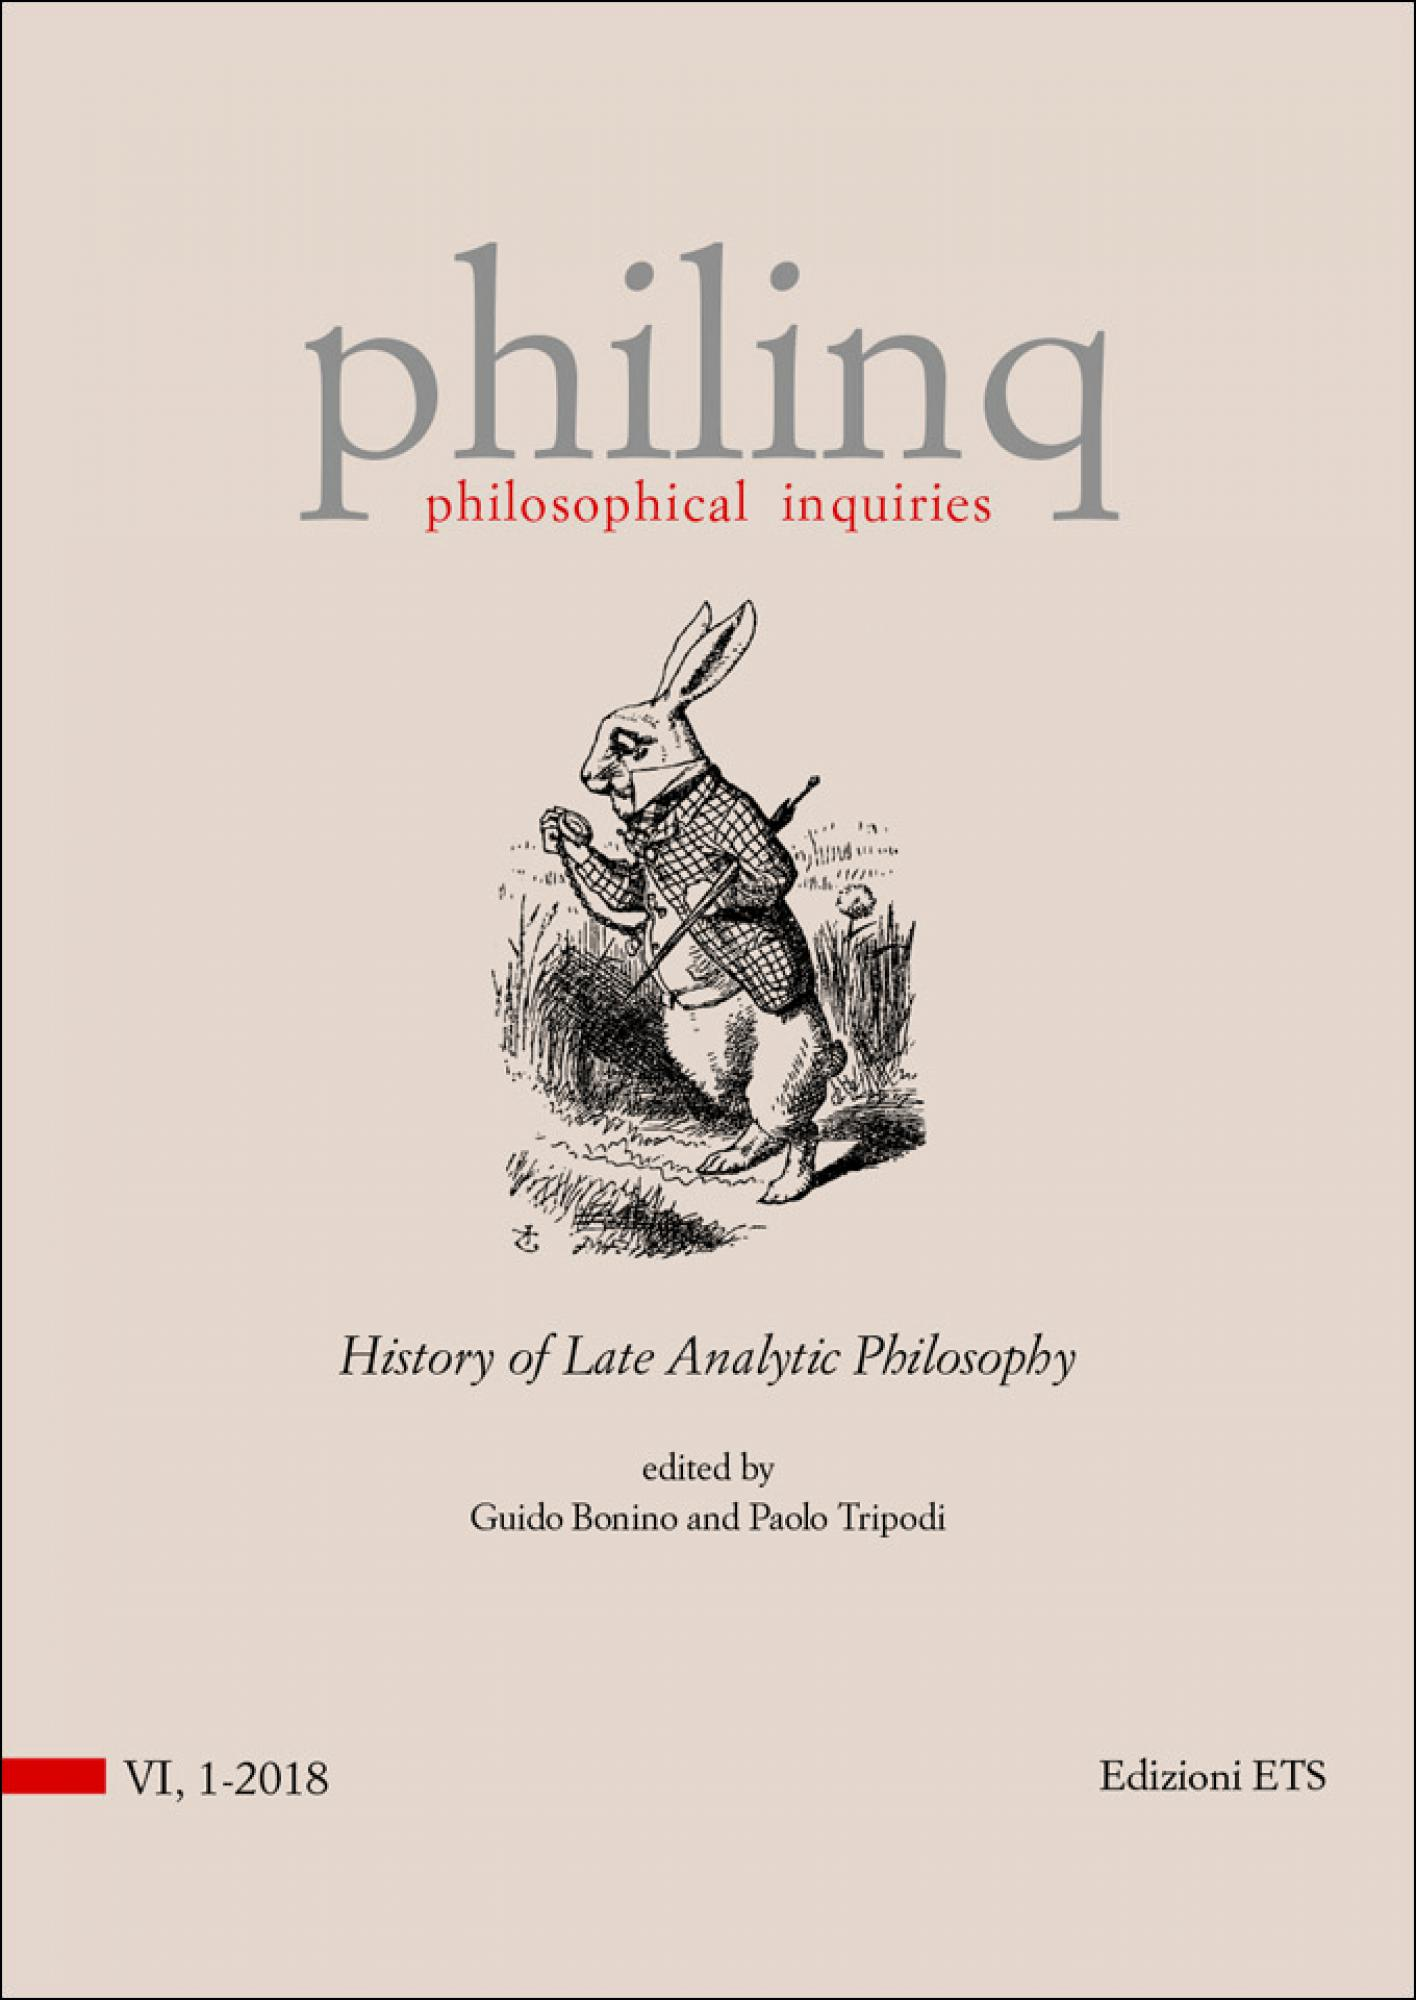 philosophical inquiries.